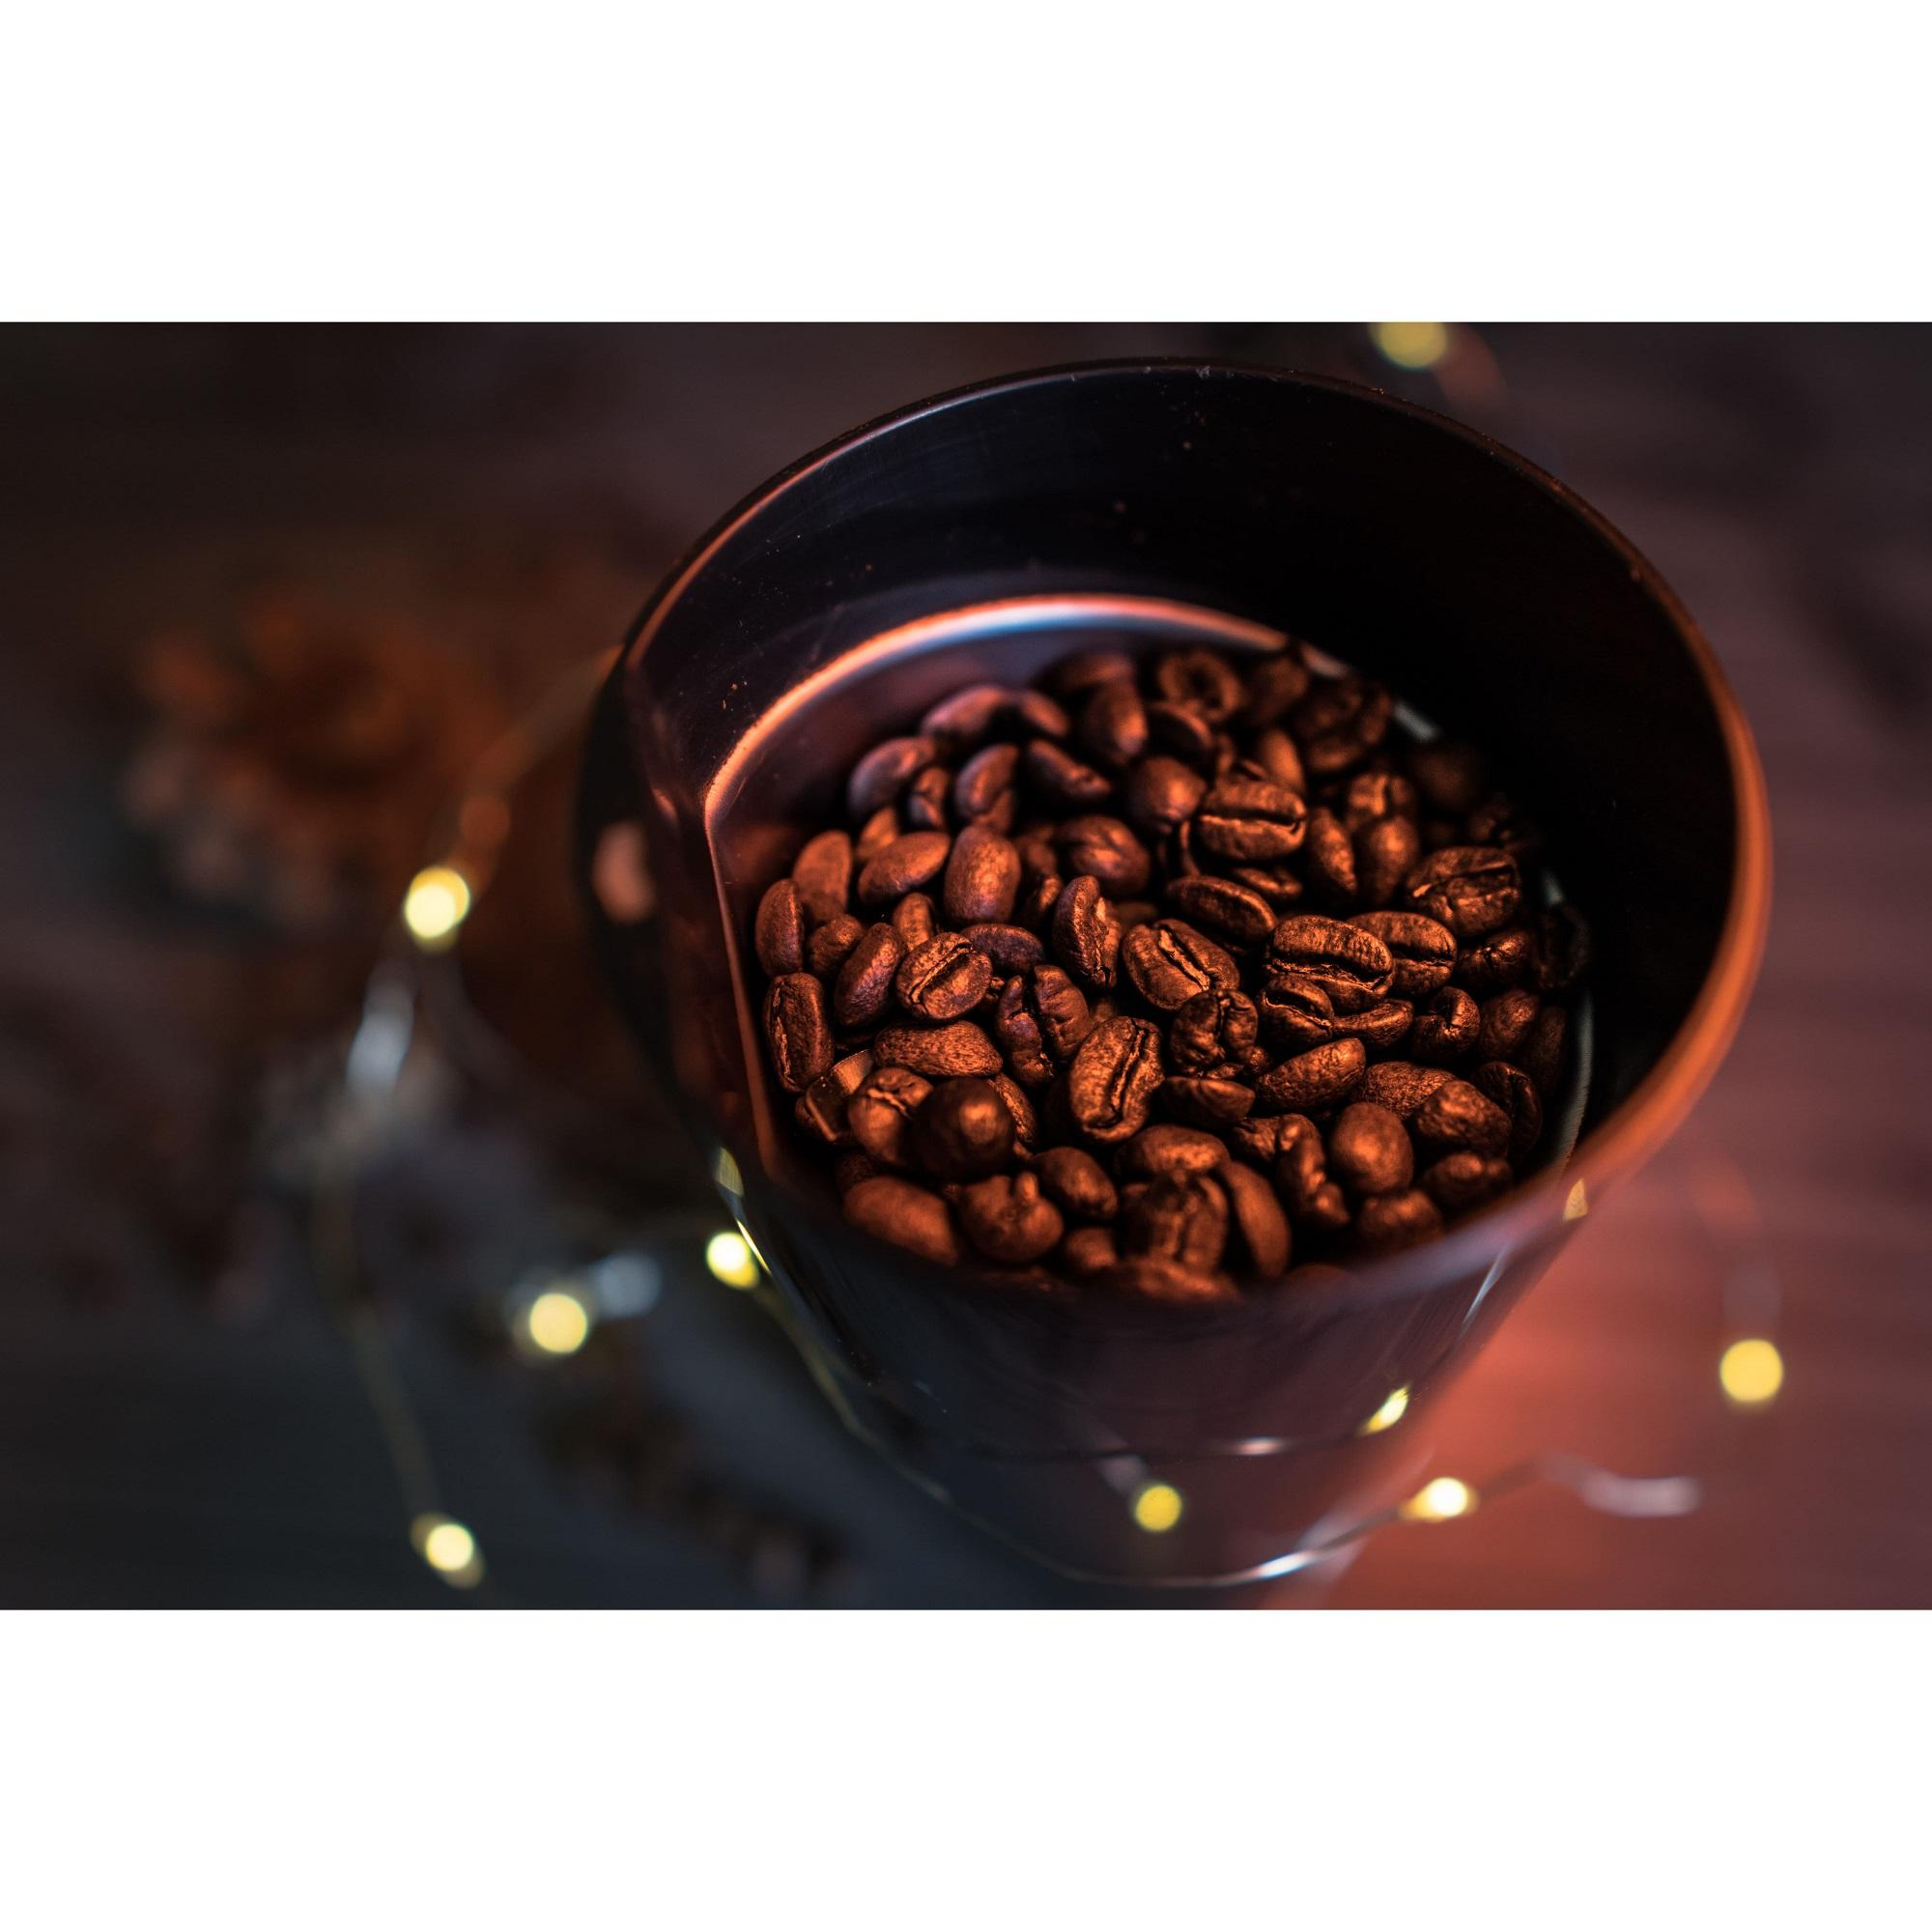 HACCP Certification Arabica Golden Mandheling & Brazil Flavor Roasted Coffee Beans